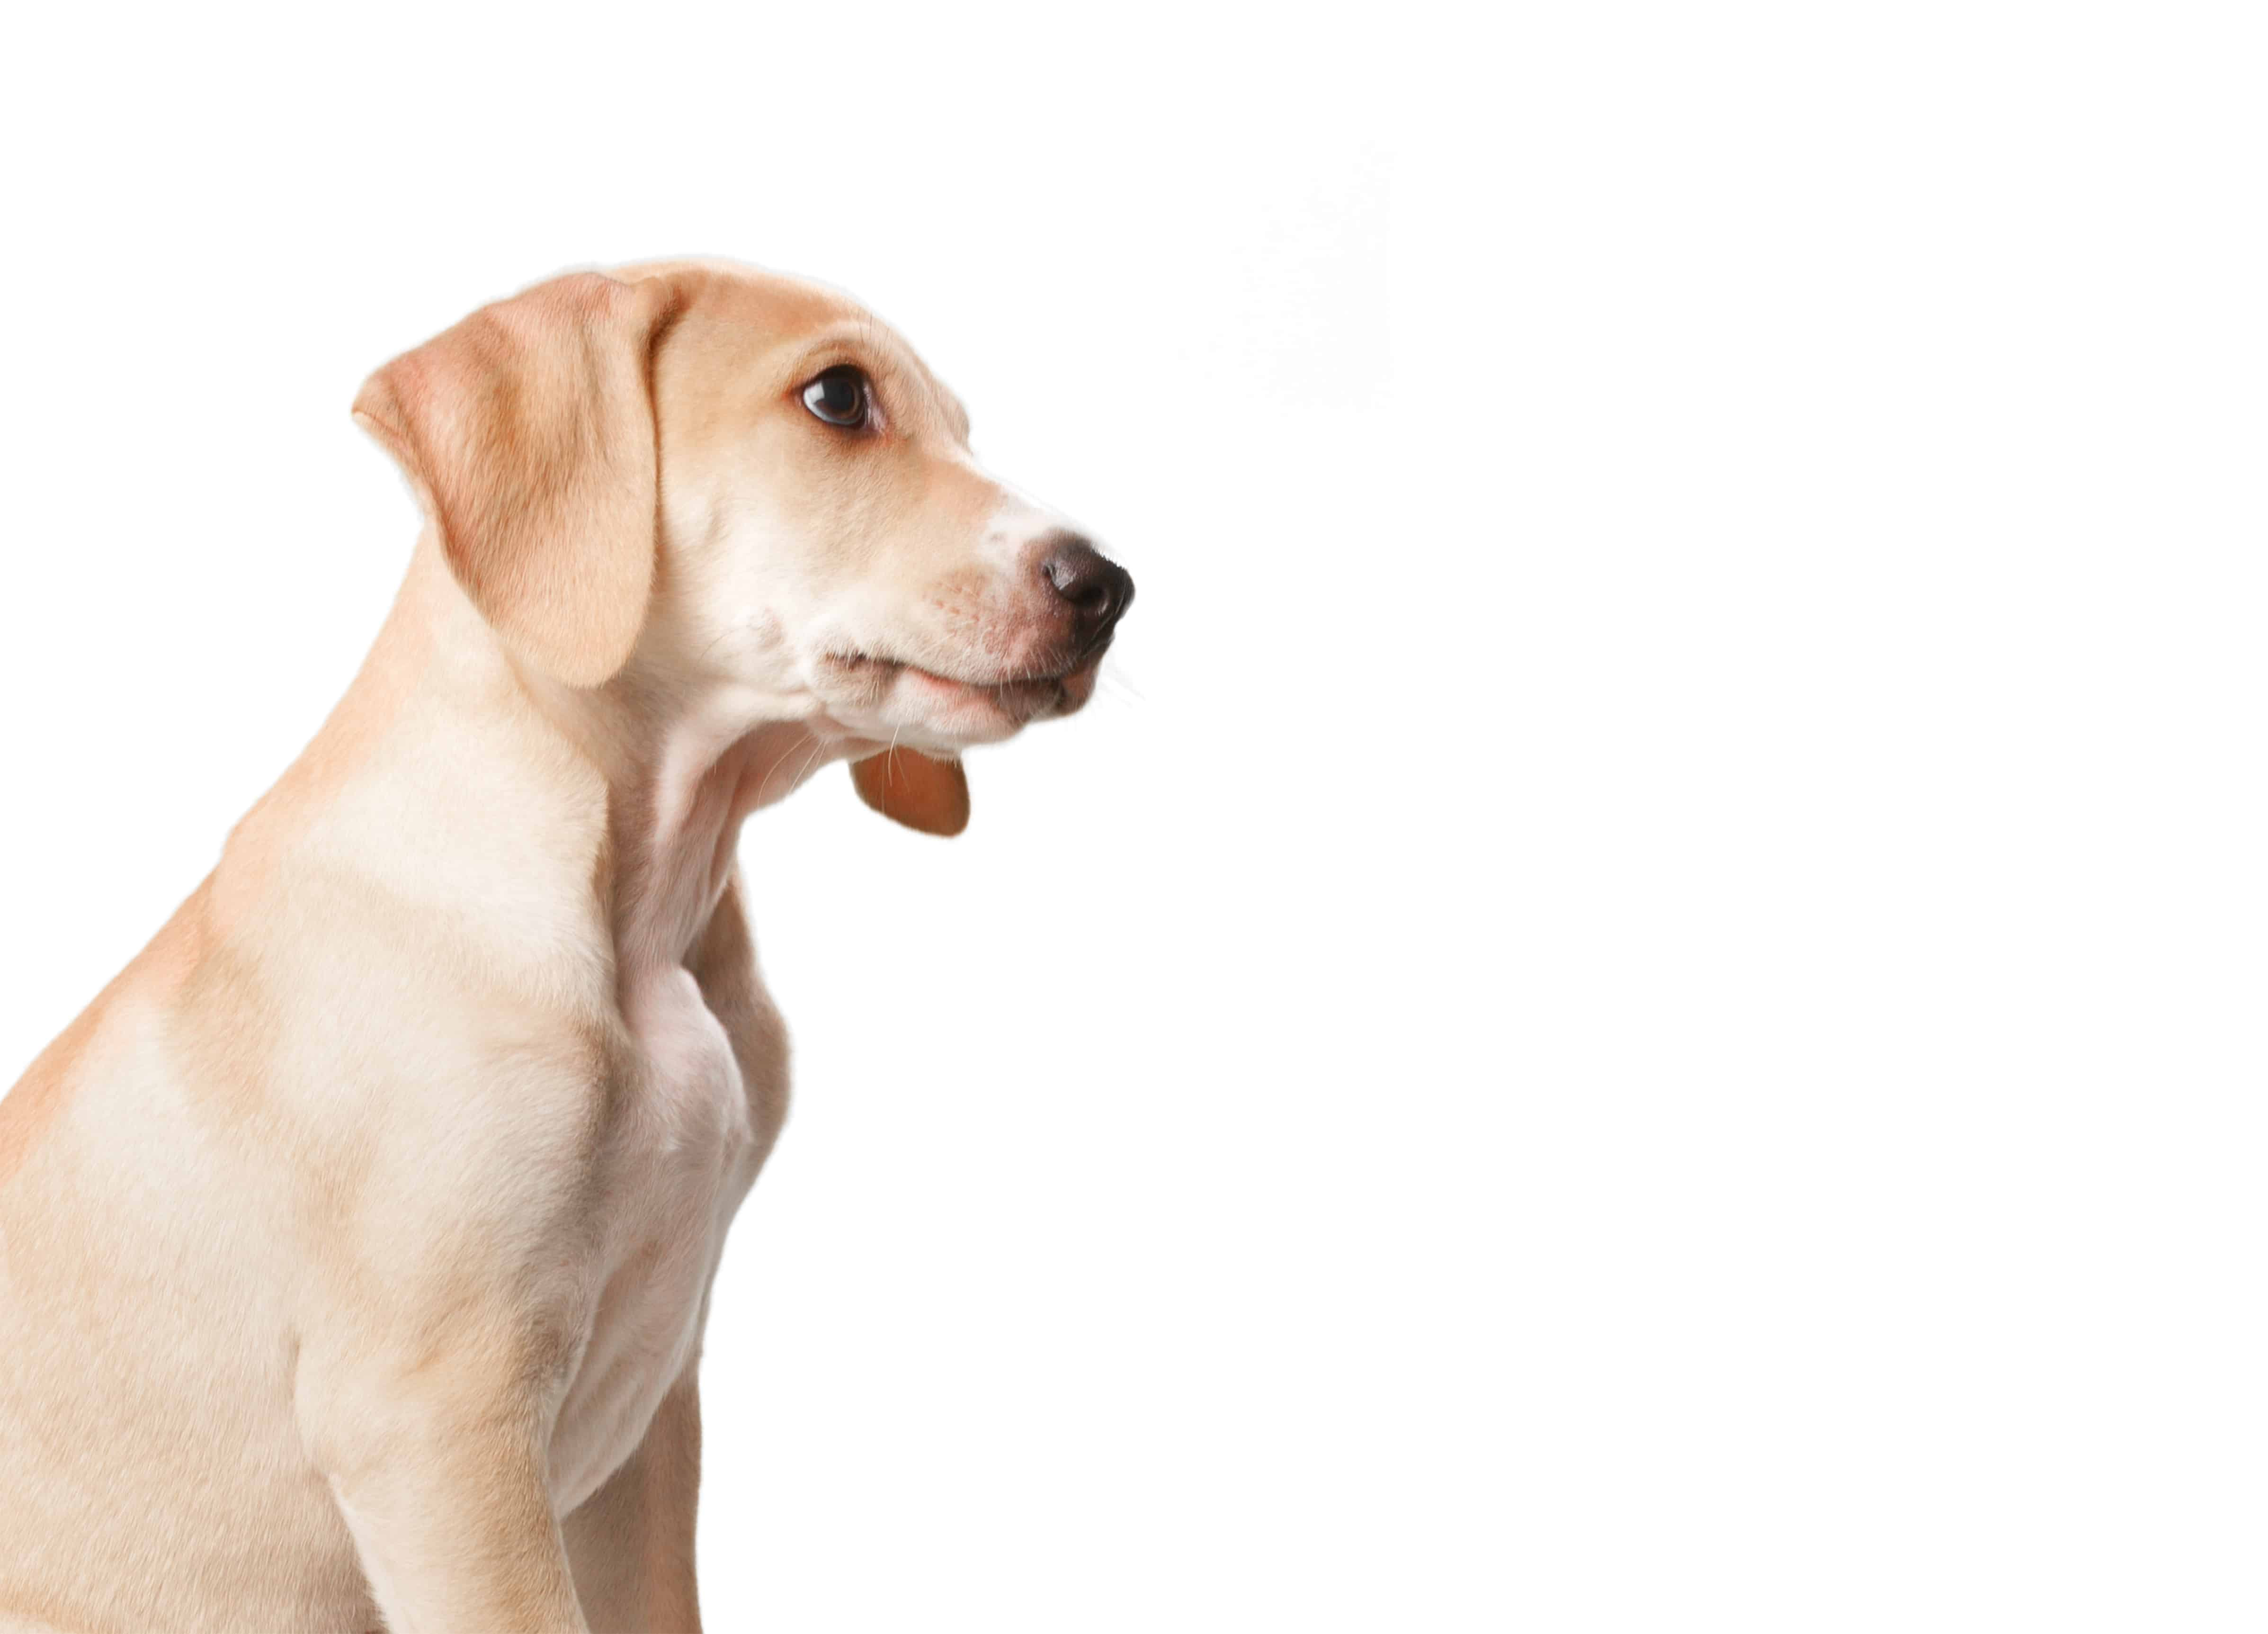 blonde dog with mouth closed